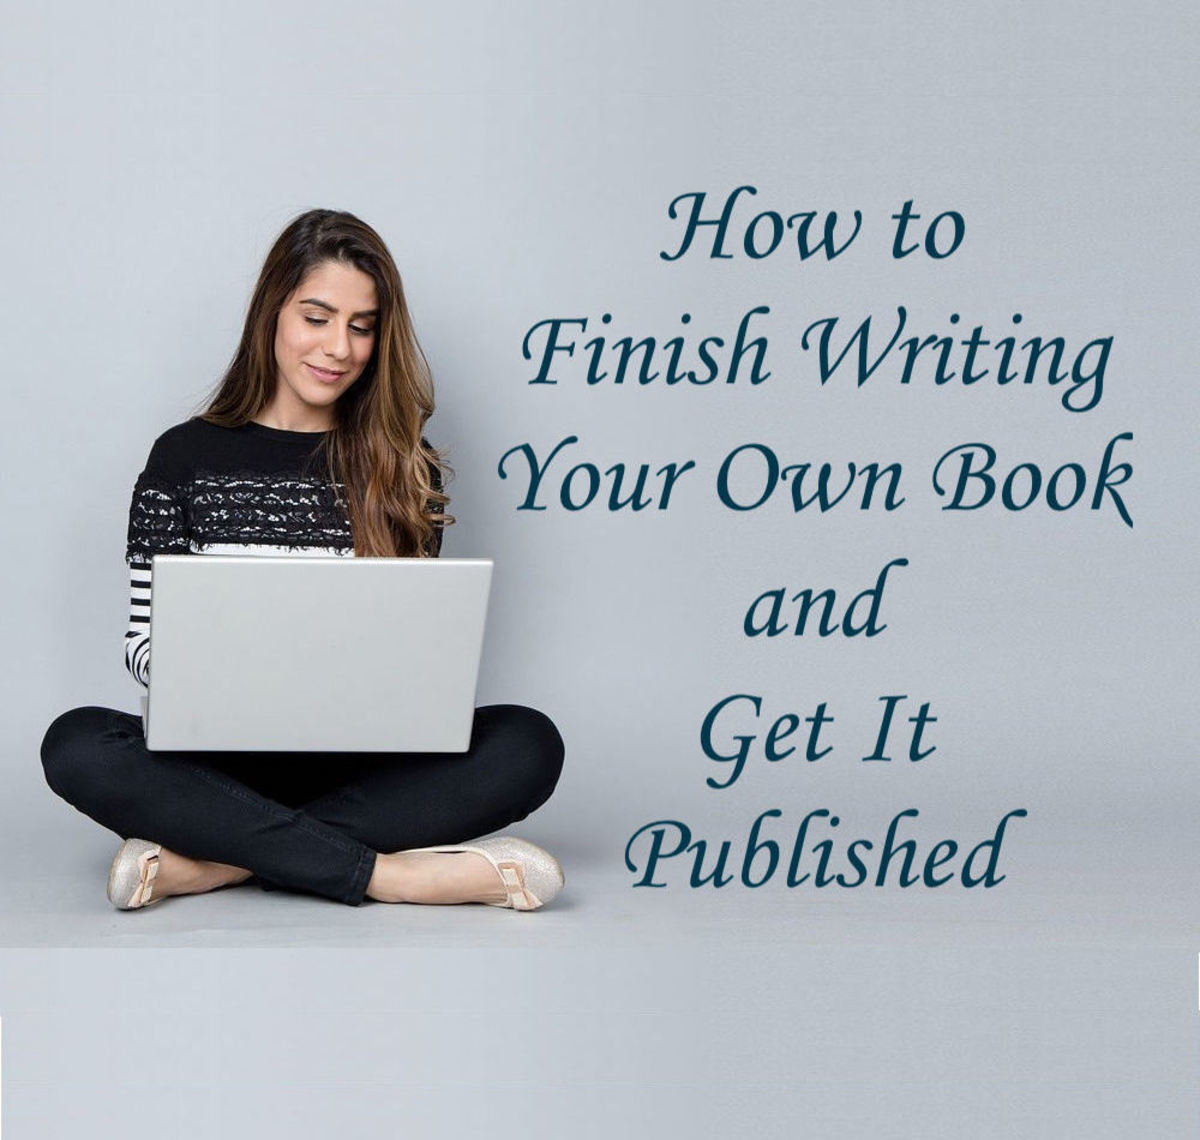 How to Finish Writing Your Own Book and Get It Published